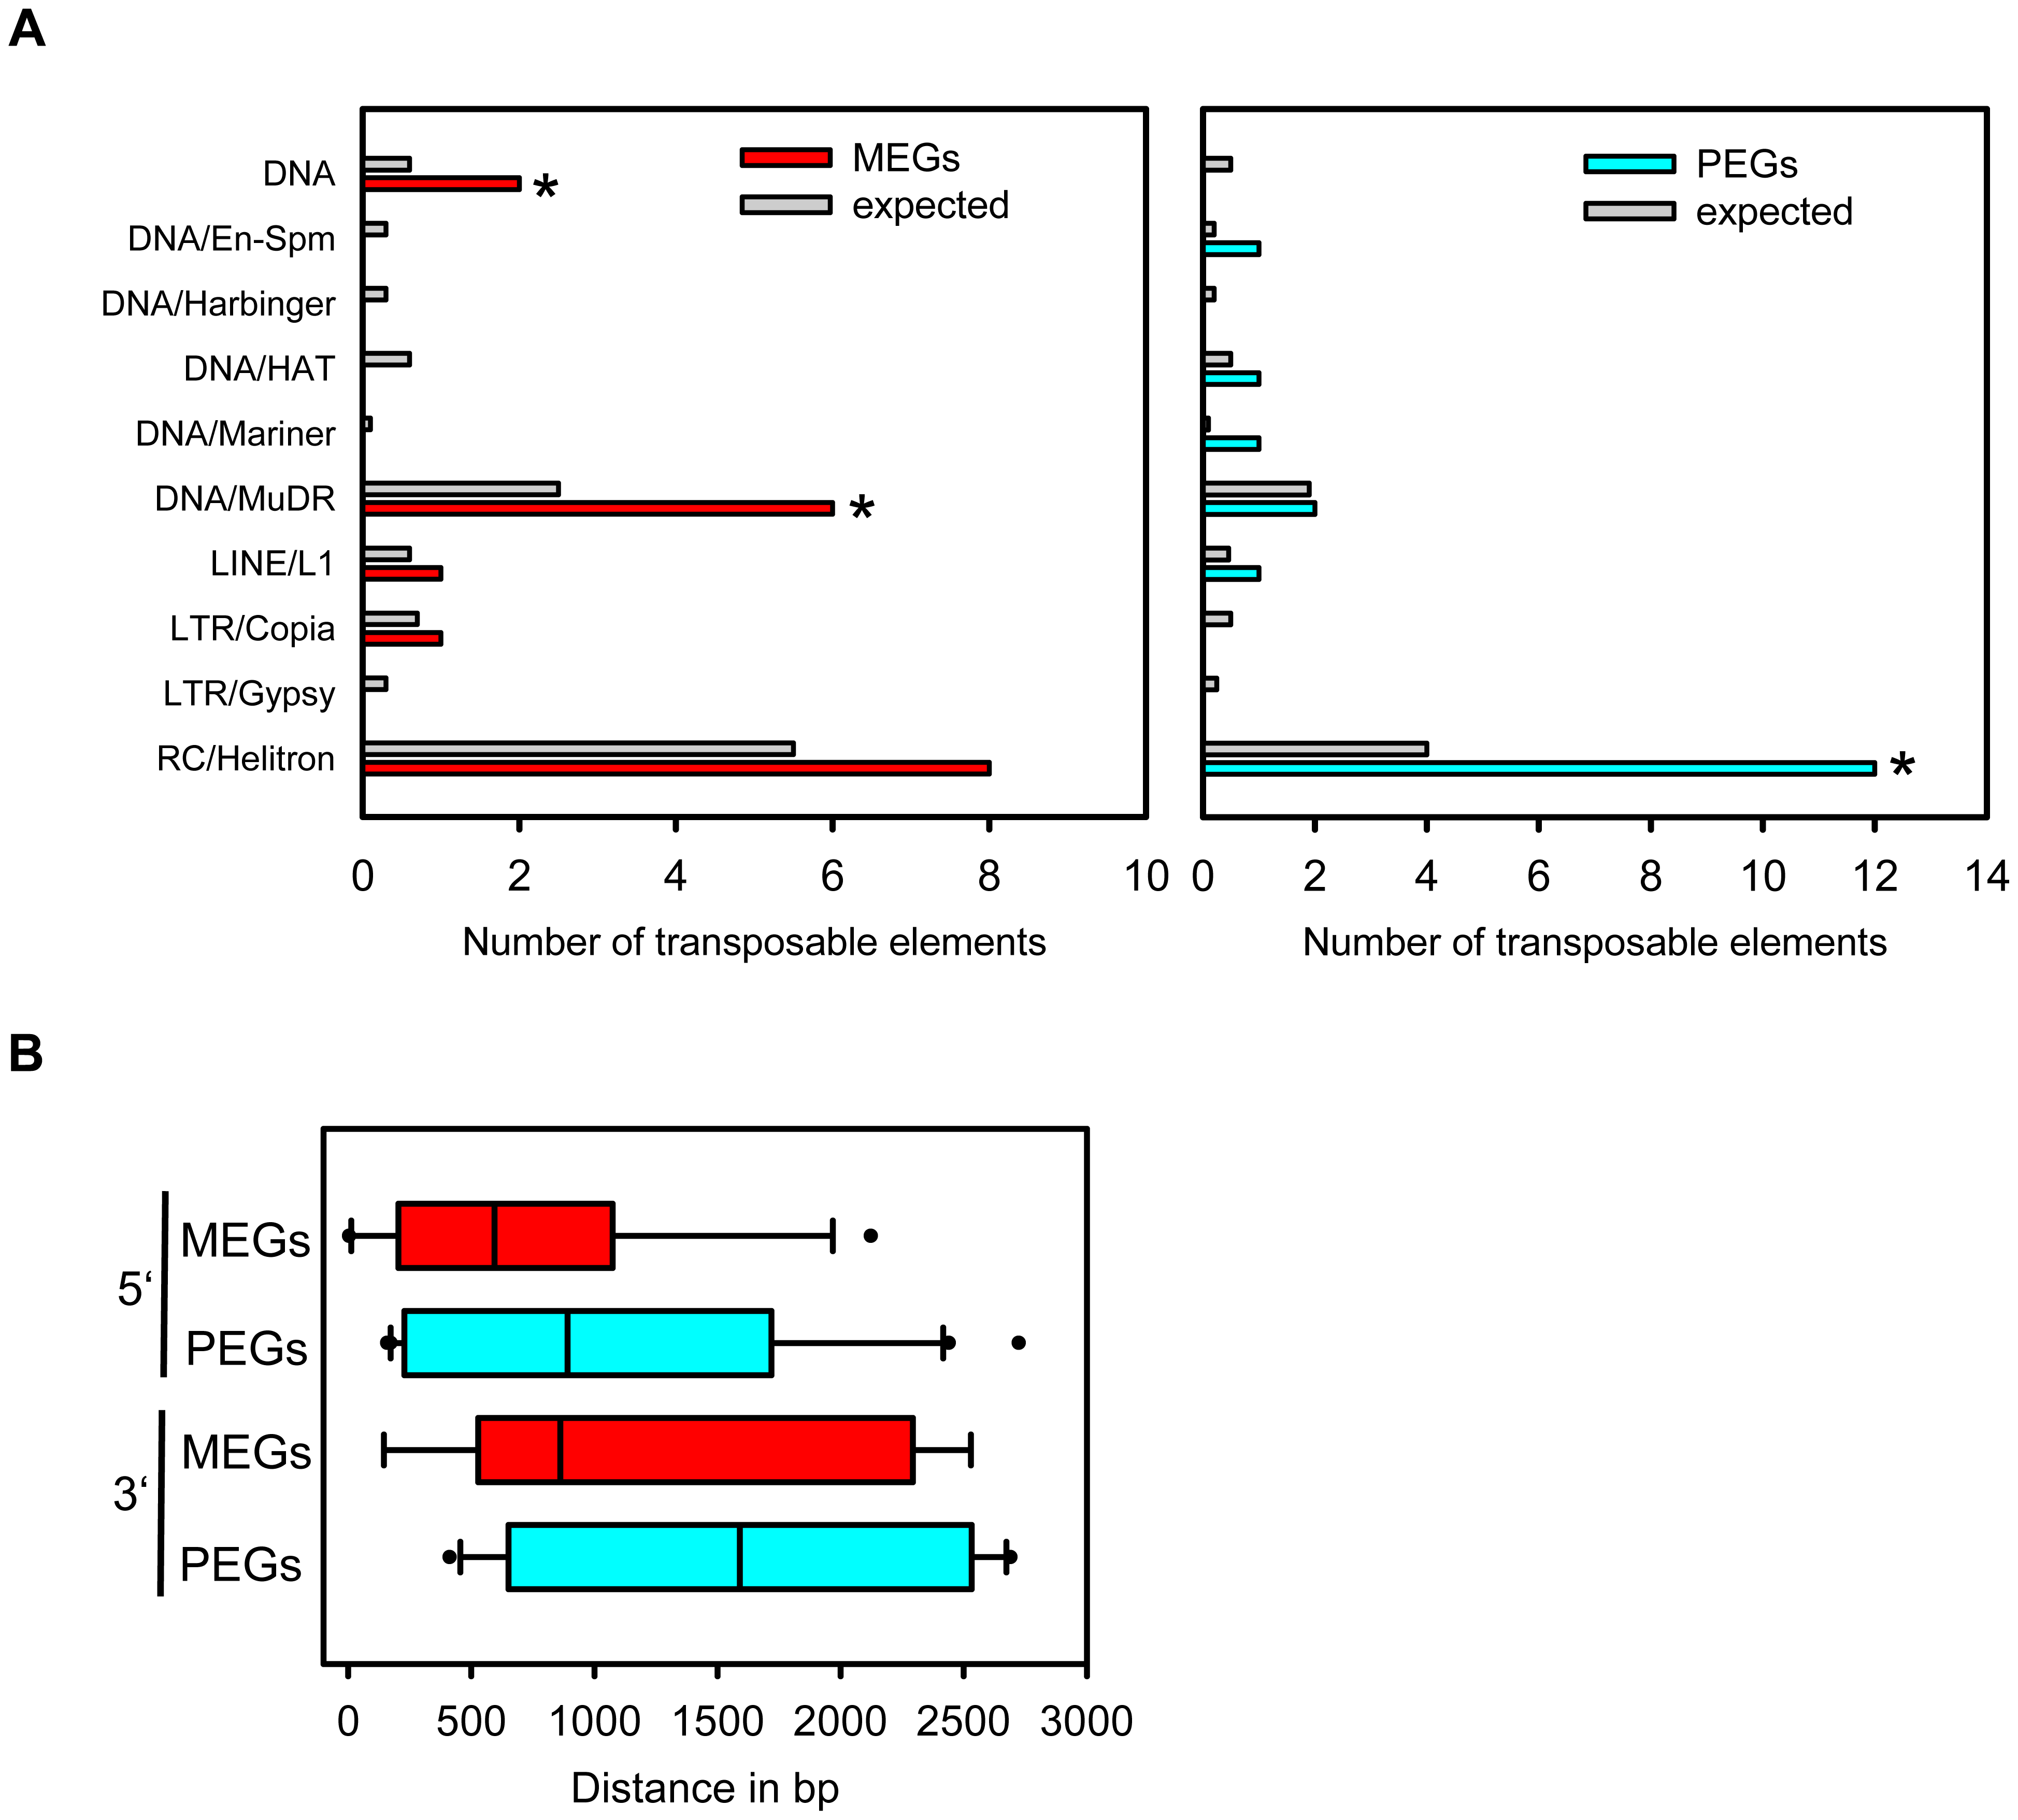 Types of Transposable Elements in the Vicinity of MEGs and PEGs.